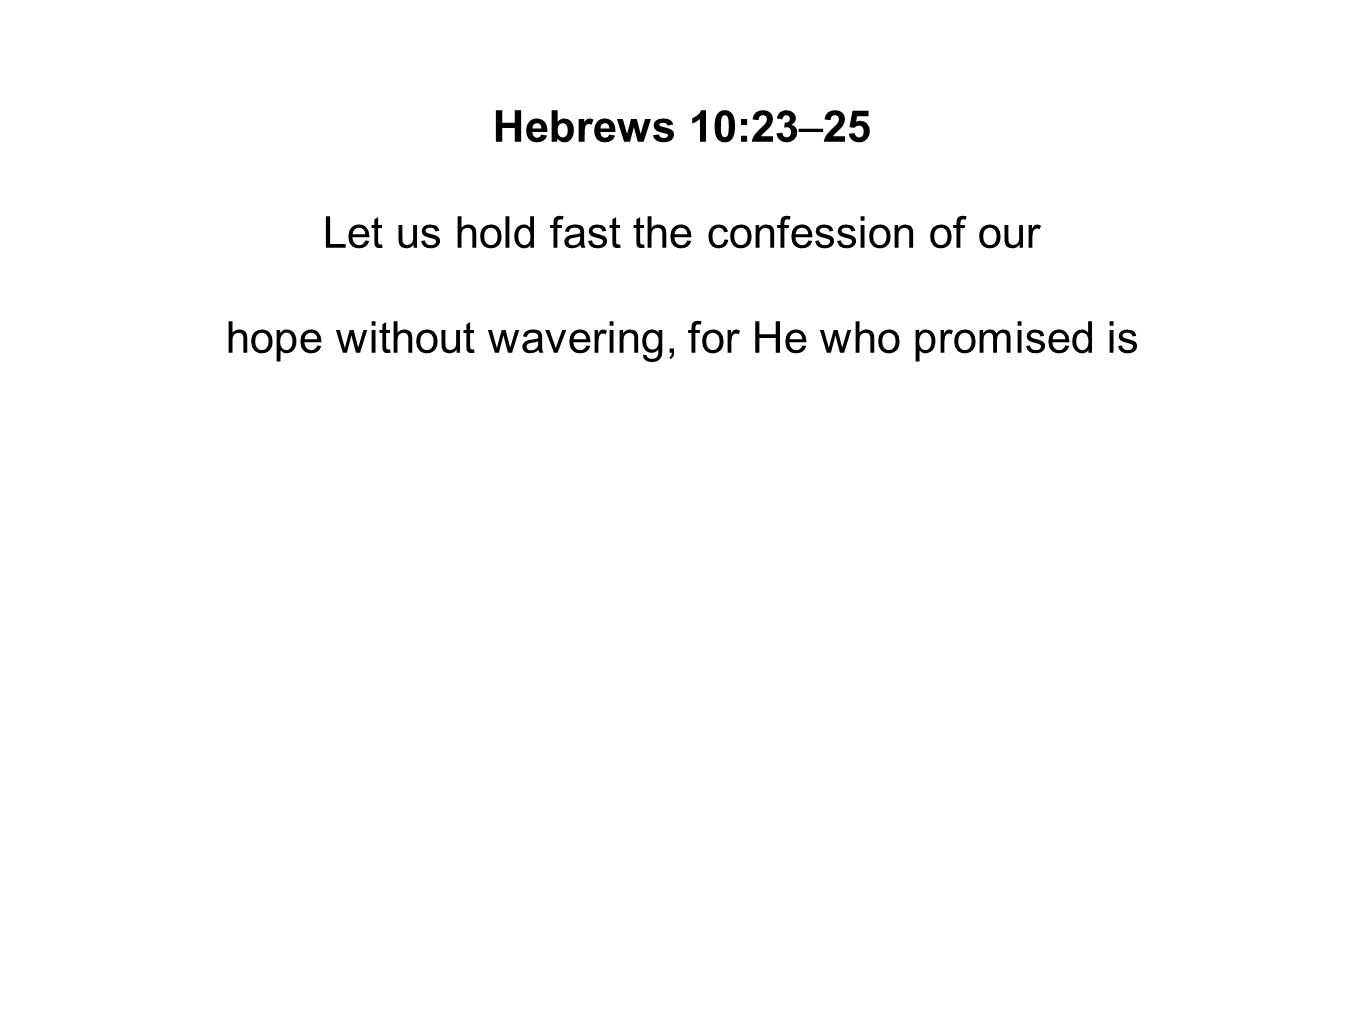 Hebrews 10:23–25 Let us hold fast the confession of our hope without wavering, for He who promised is